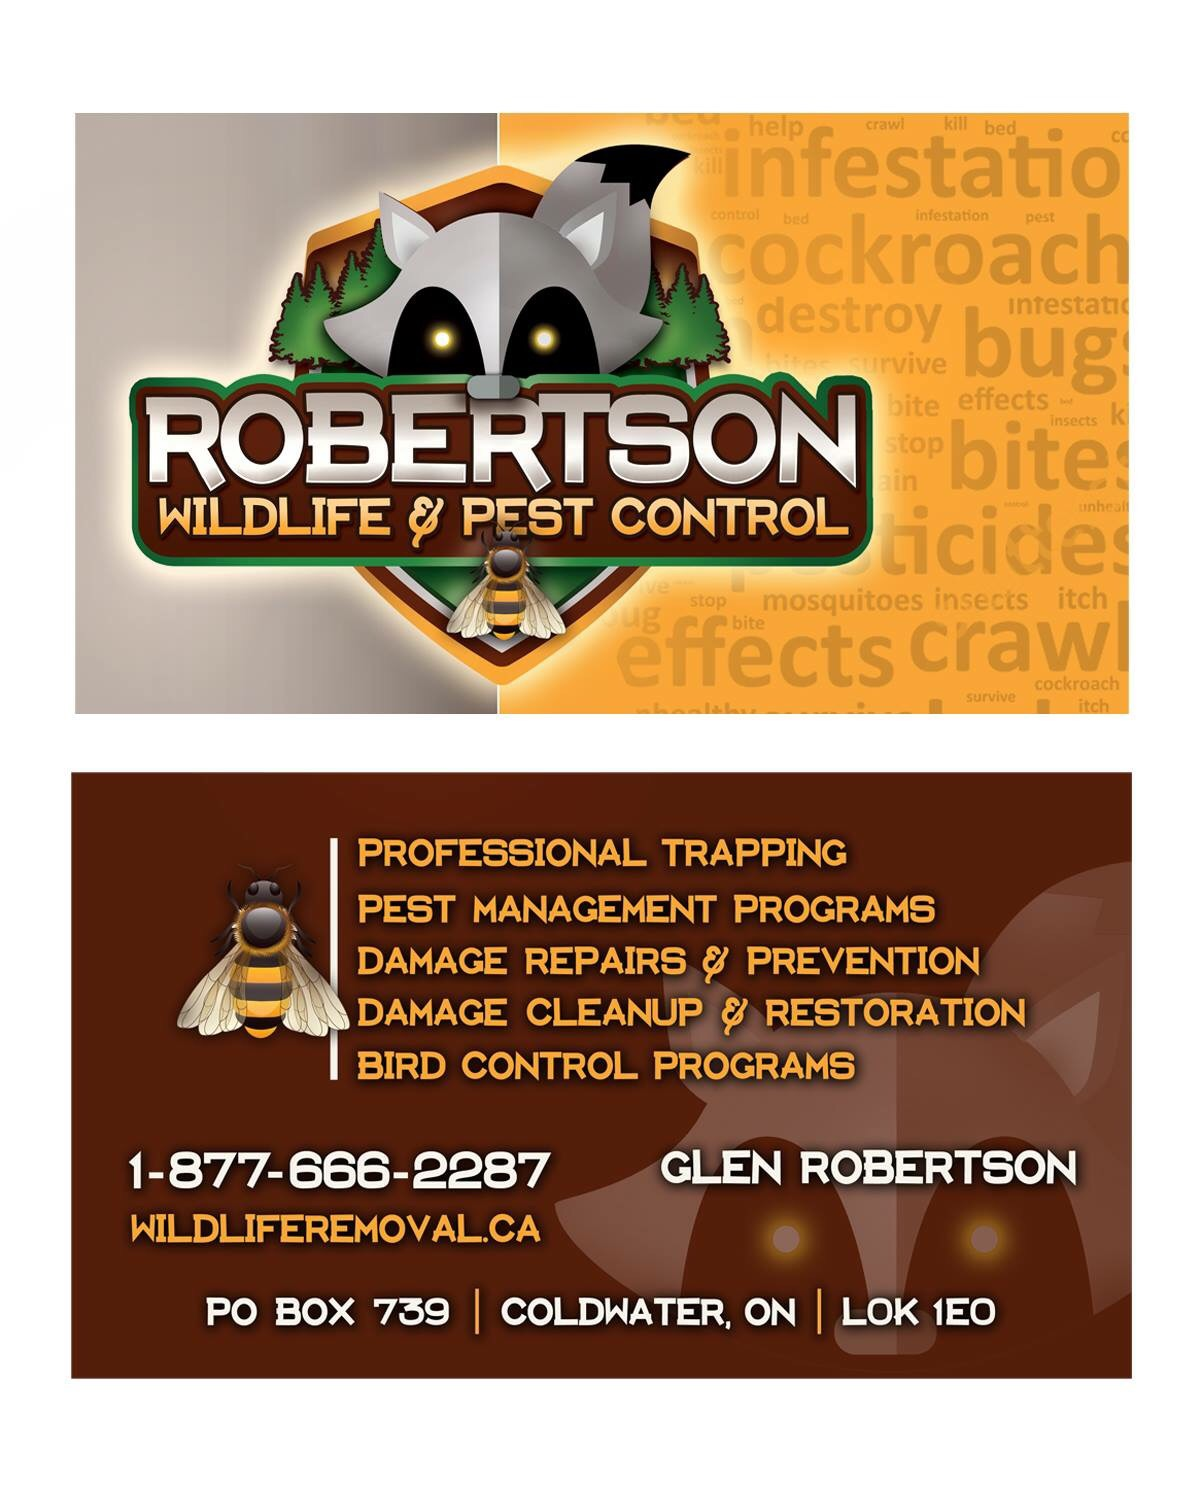 Robertson Wildlife and Pest Control  image 0